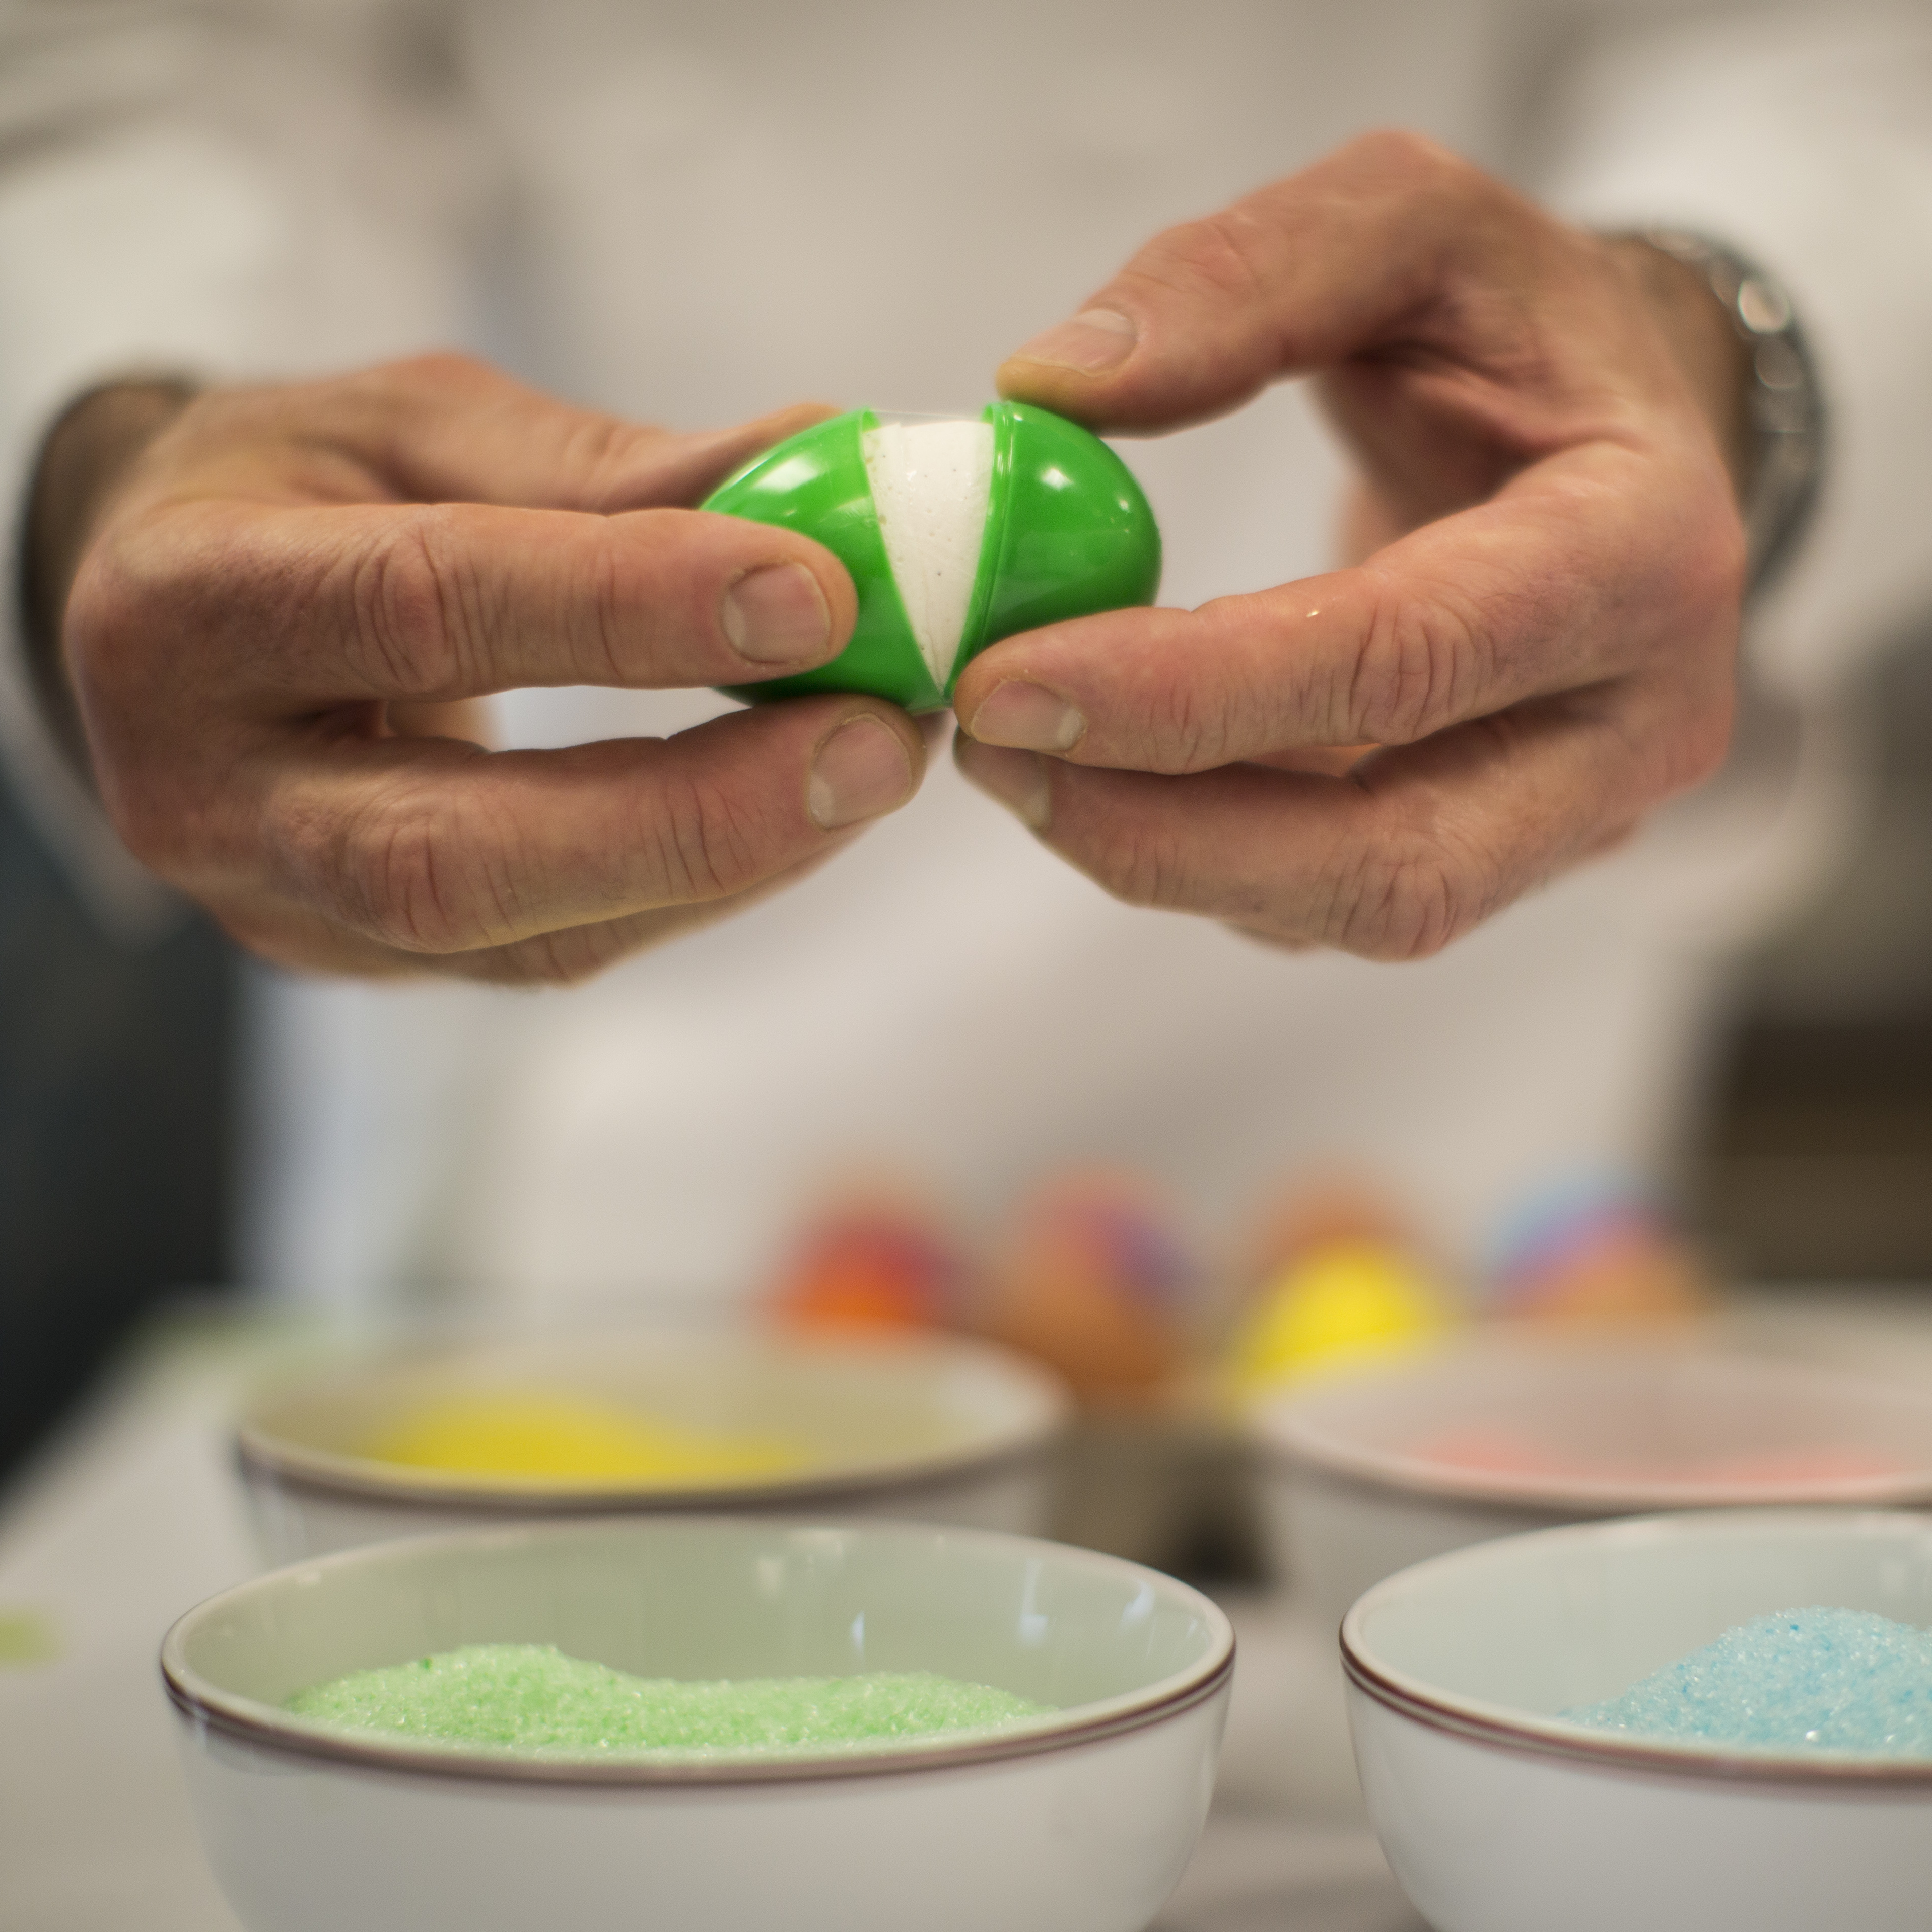 After the marshmallow has set, open the plastic shell and dip the egg in flavored and colored sugar, as Thomas Keller demonstrates here.